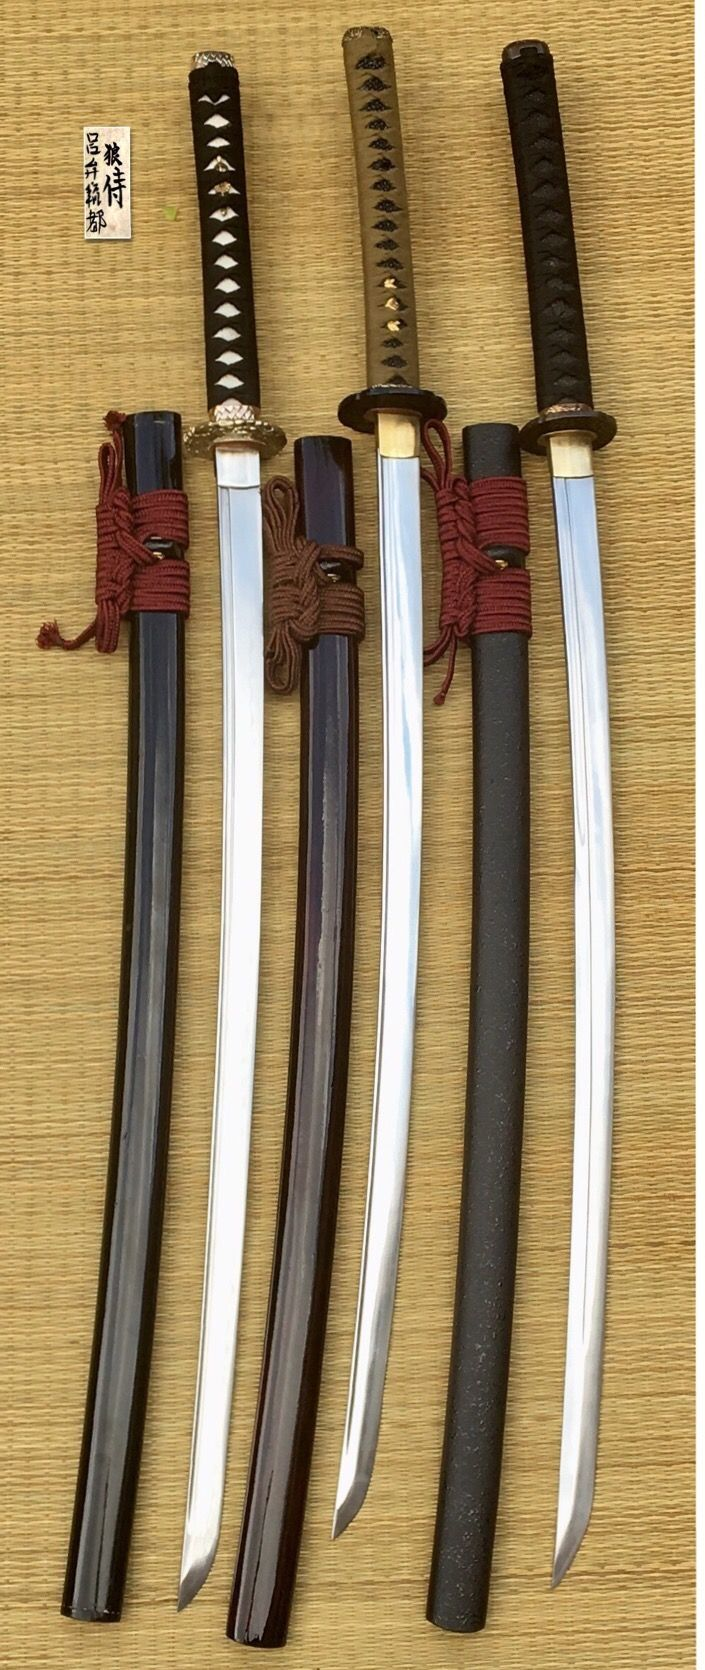 Hand made AISI 1060 steel. Clay tempered shinogui zukuri at left, Razor sharp shinogui zukuri at center and Tameshigiri Unokubi zukuri razor sharp at right. Custom by me.